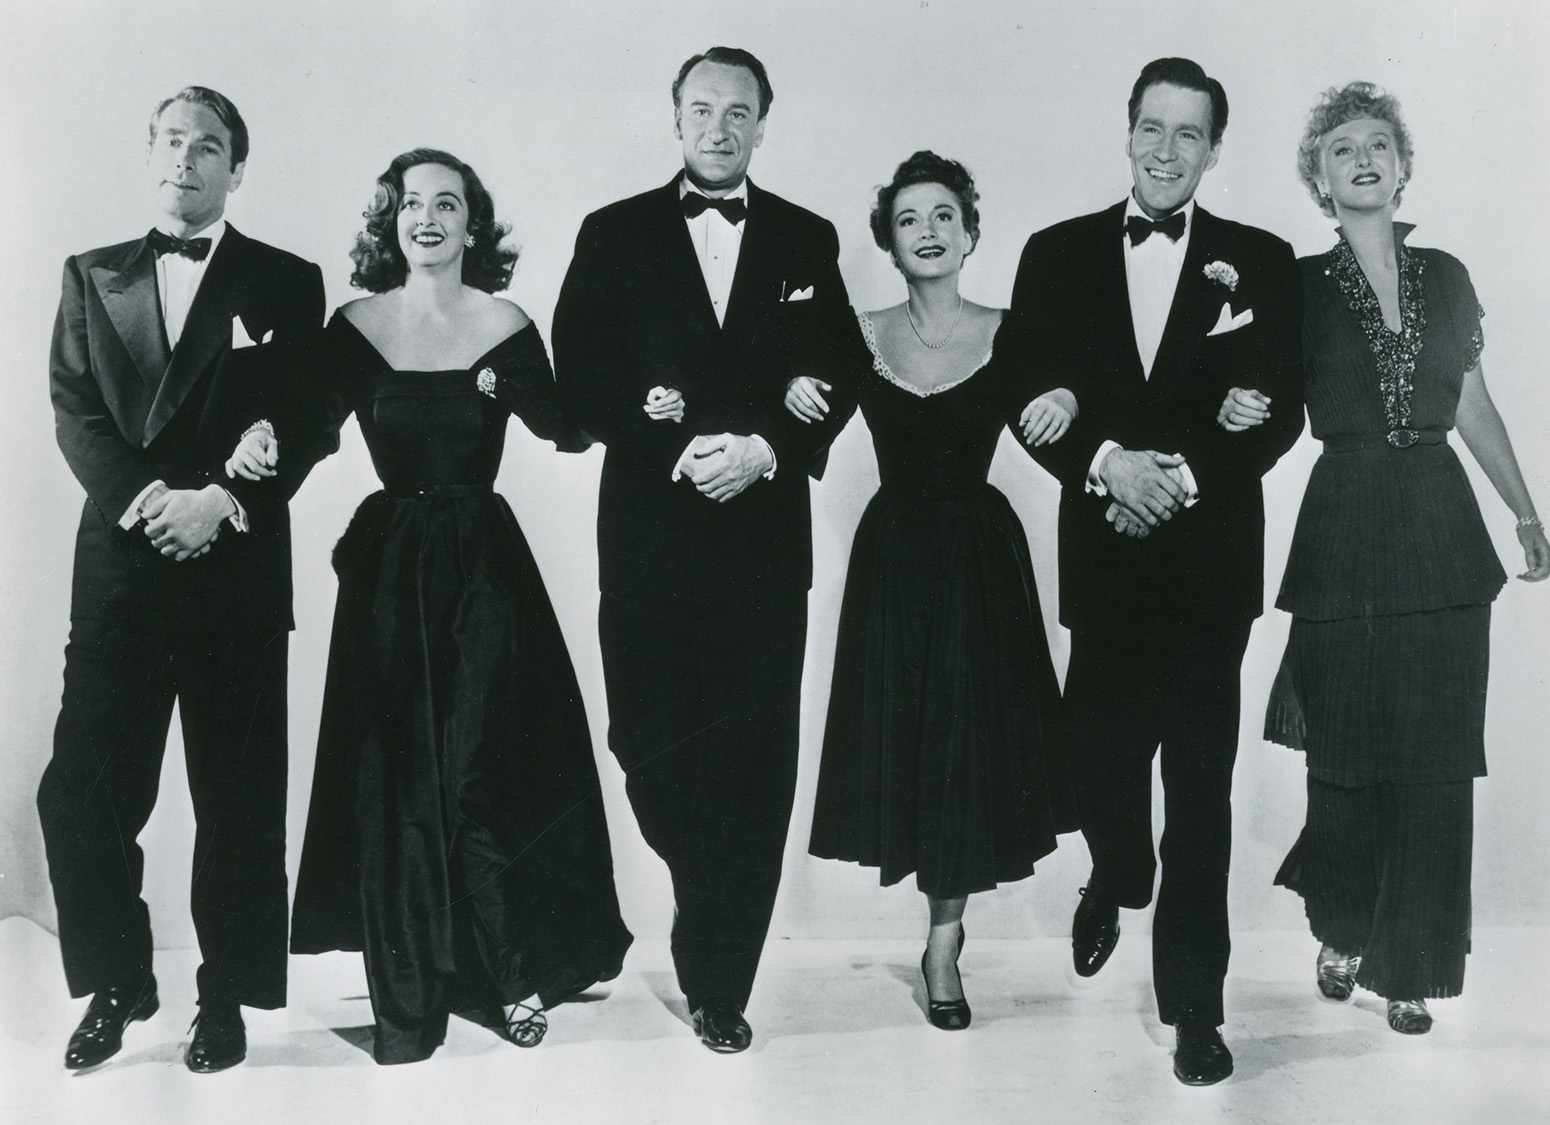 1. CAST All-About-Eve-bw-still-005